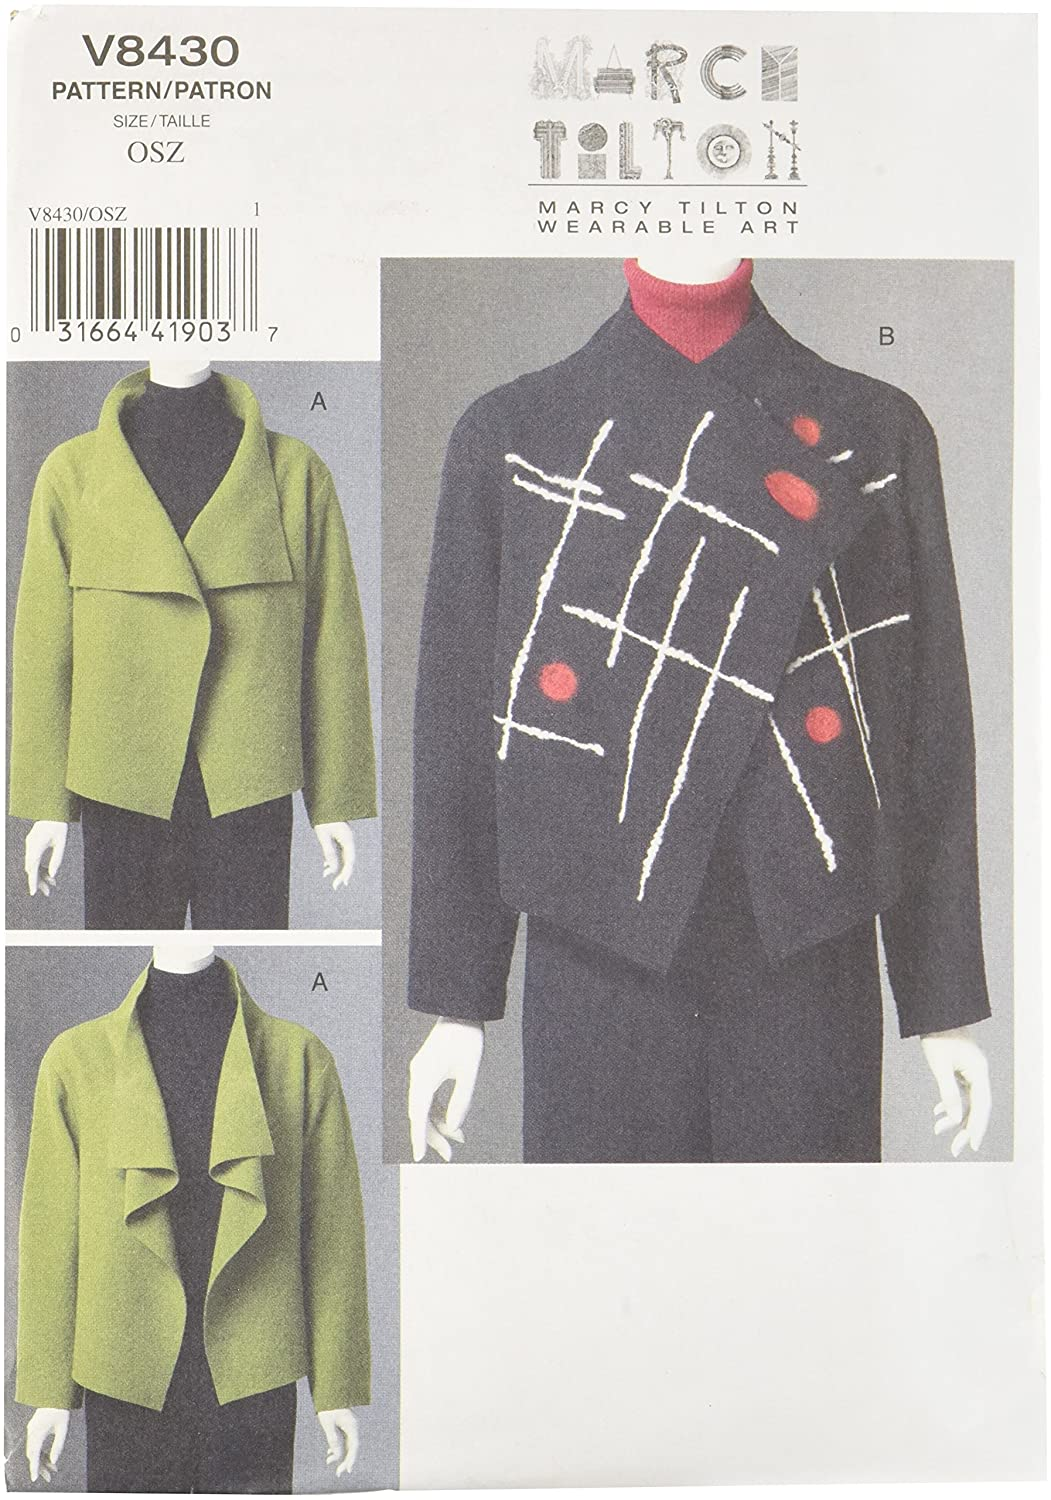 Vogue Patterns V8430 Misses' Jacket V8430OSZ